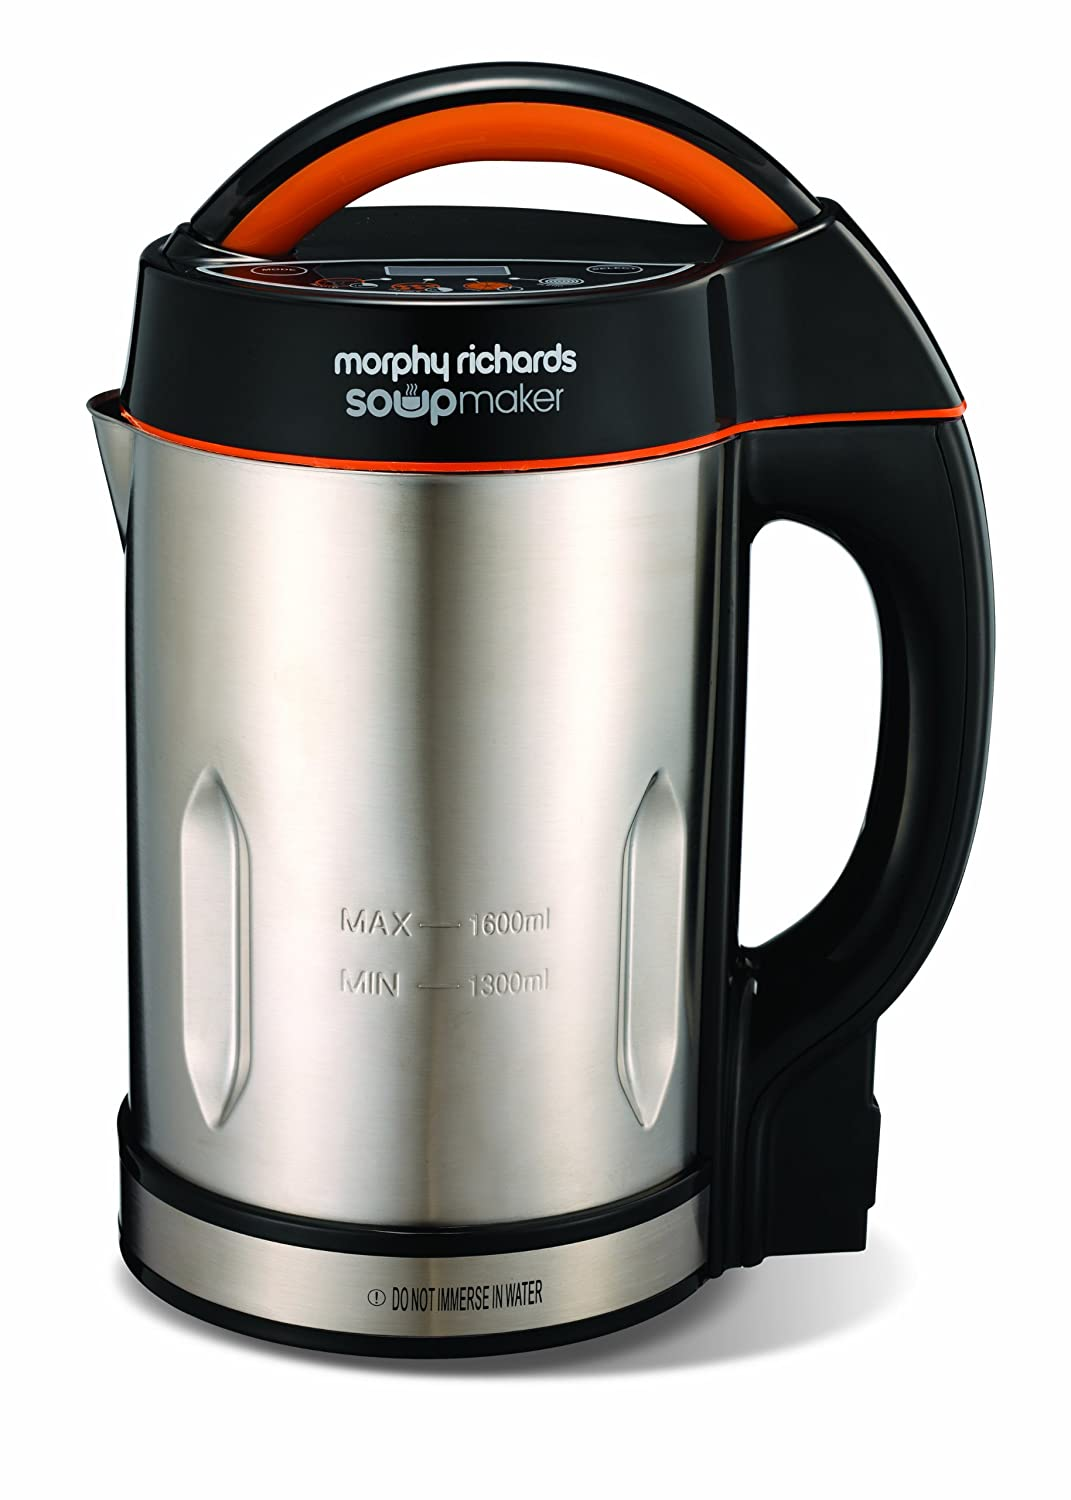 The Morphy Richards 48822 looks stylish and is one of the top soup makers on the market right now.